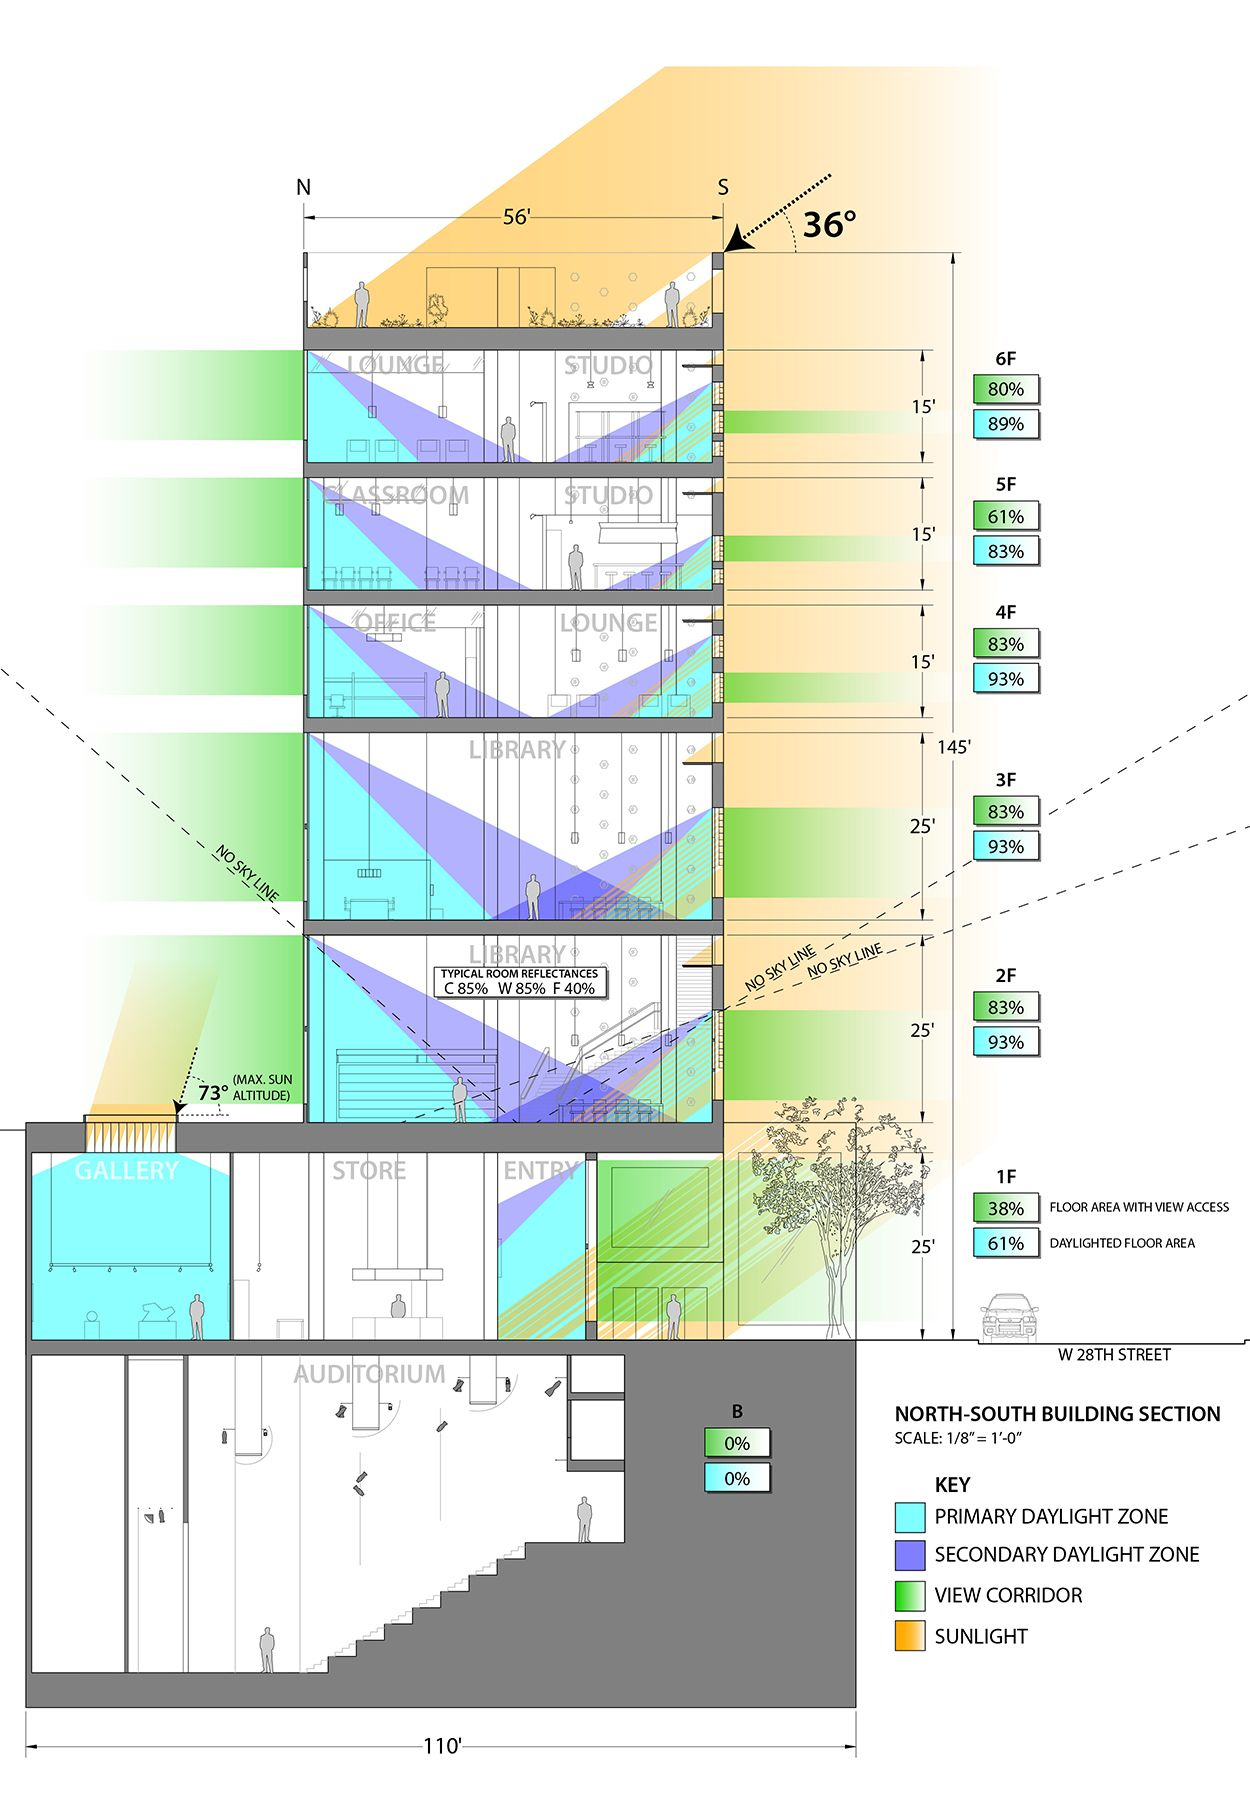 Student Center Section - South to North  sc 1 st  Pinterest & A Lighting Design for a 24/7 Student Center | Pinterest ...